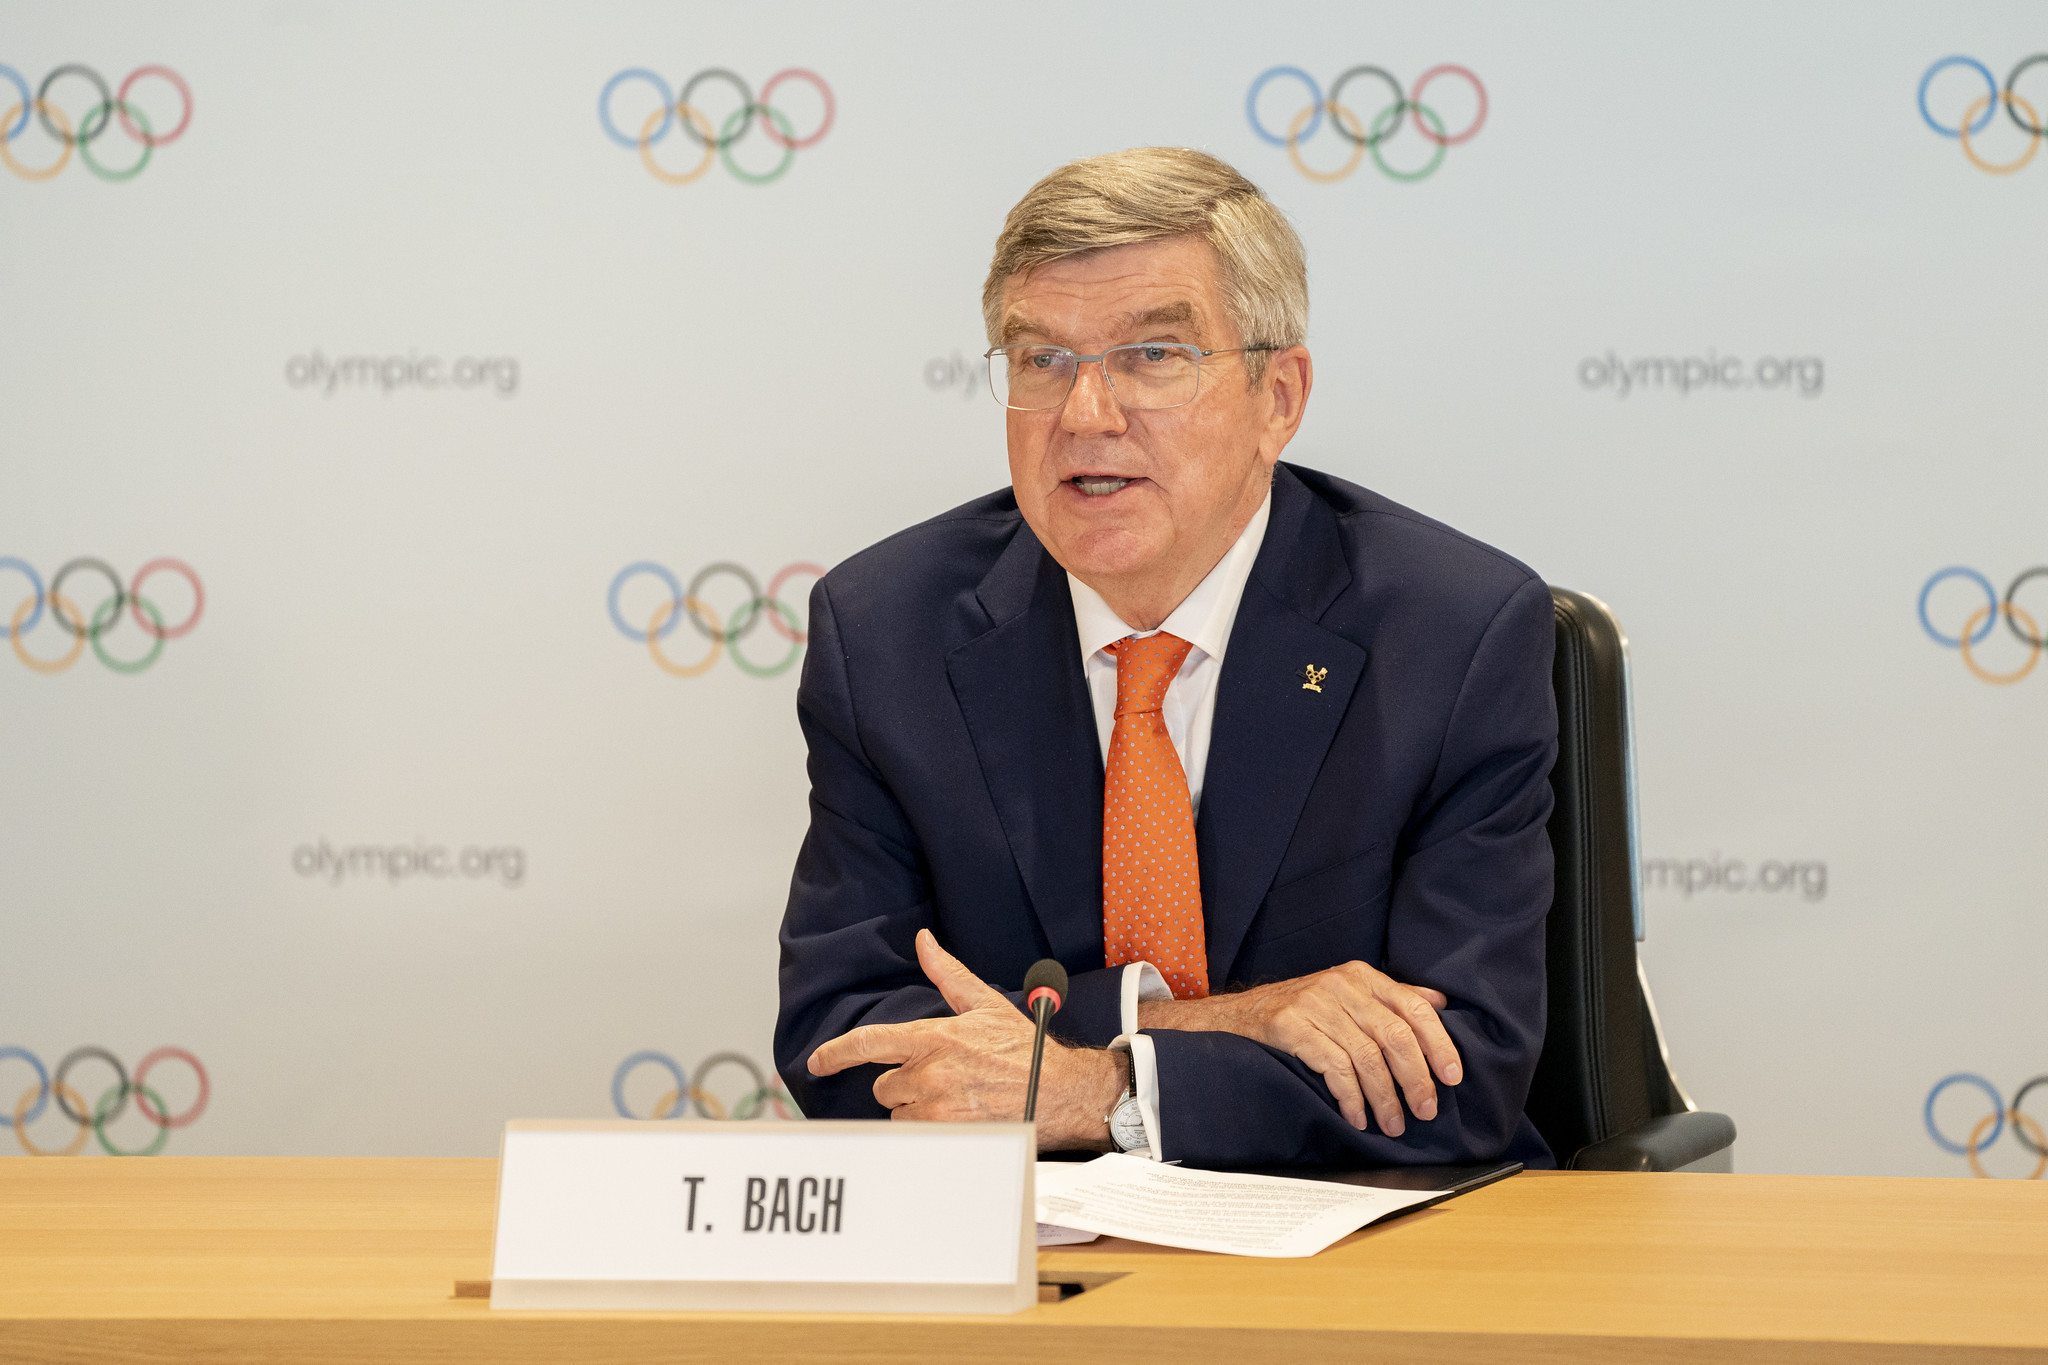 IOC President Thomas Bach suggested the motto be changed to include the word